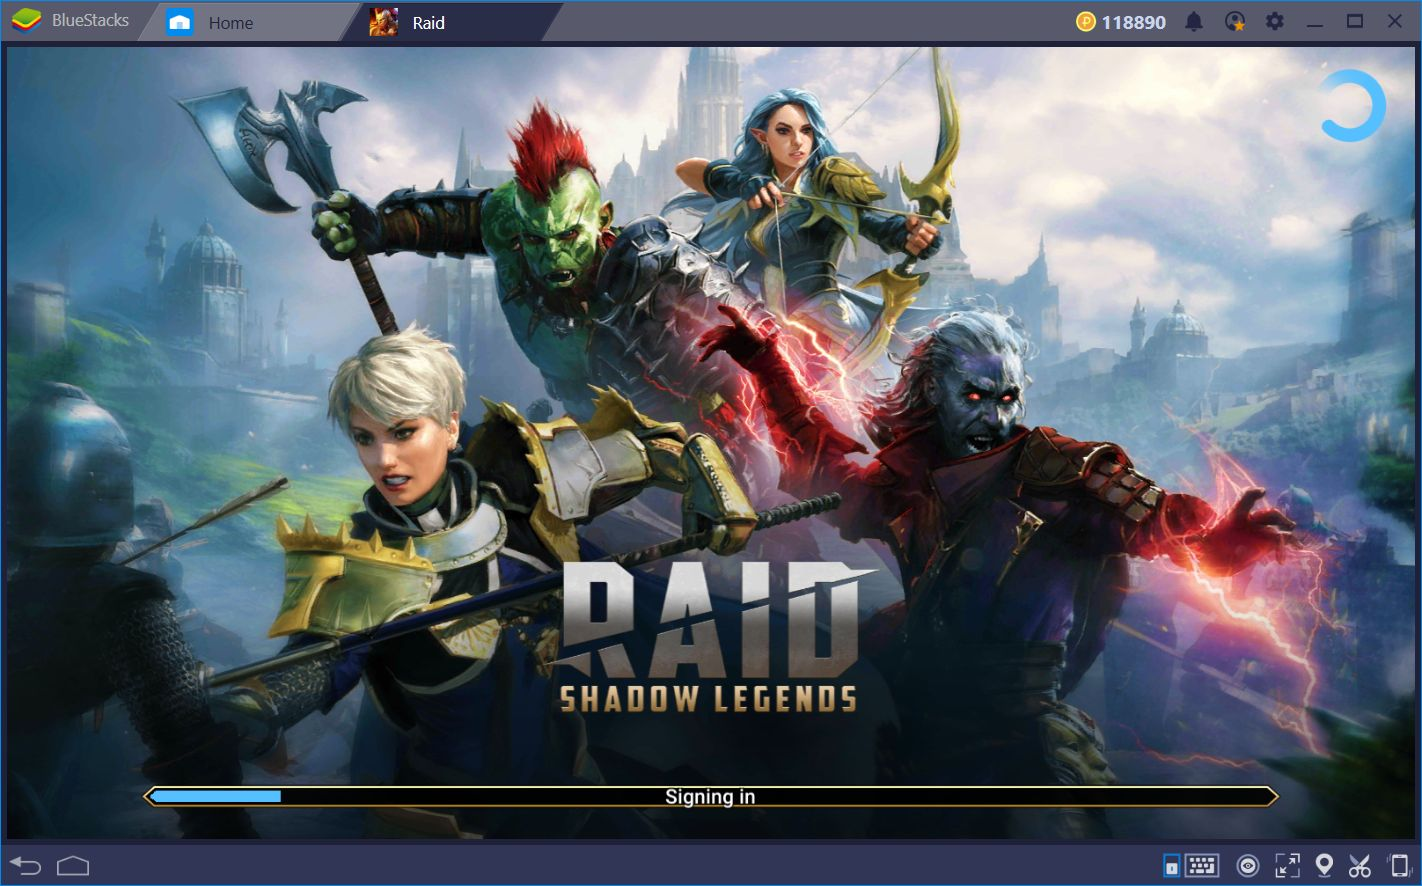 RAID: Shadow Legends on PC —A Grittier and Realistic Twist to Traditional Gacha Games